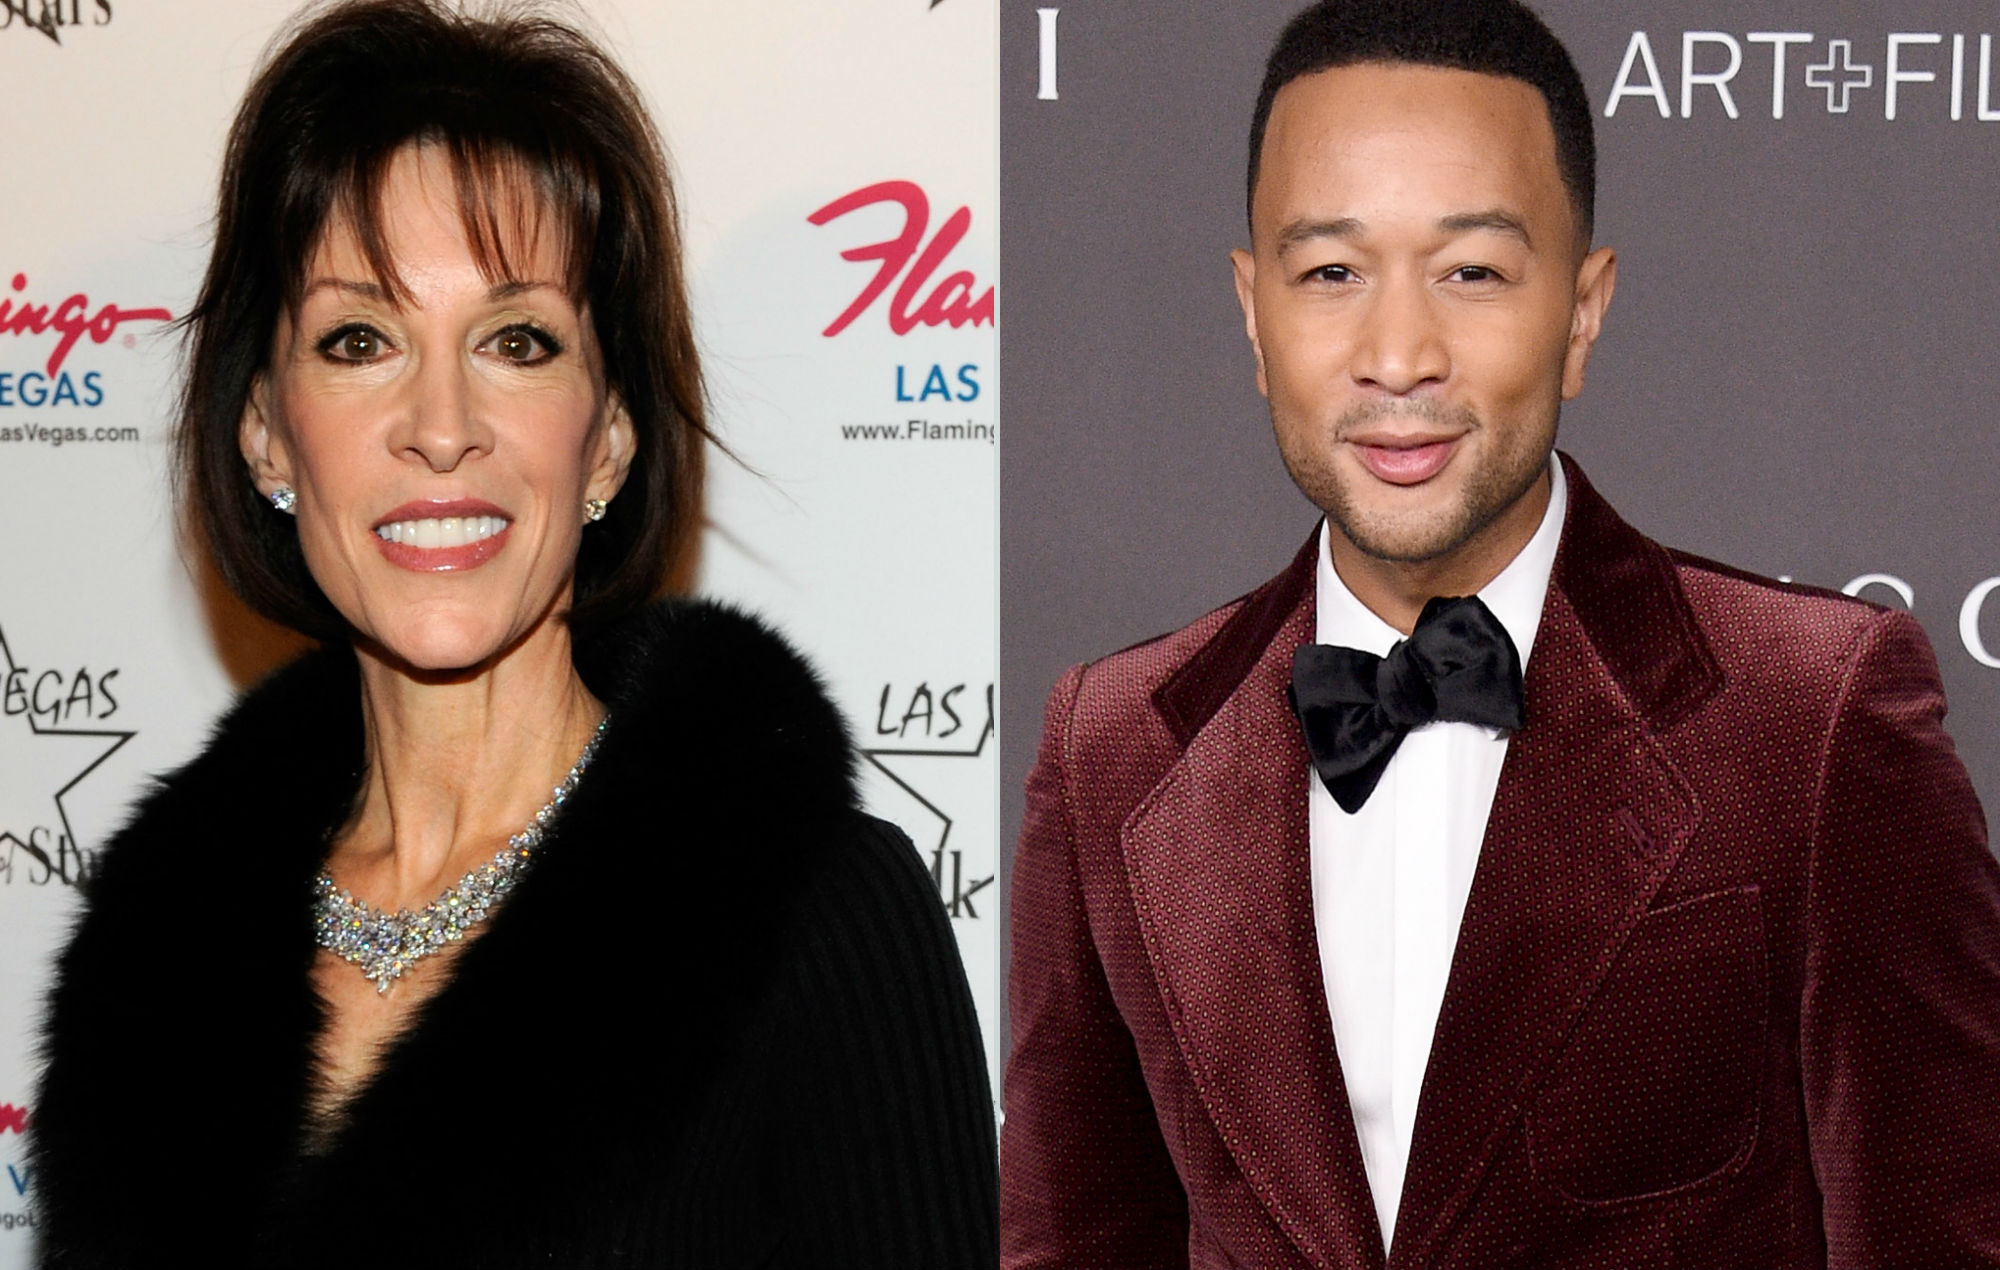 Dean Martin's daughter slams John Legend after changing 'Baby It's Cold Outside' lyrics